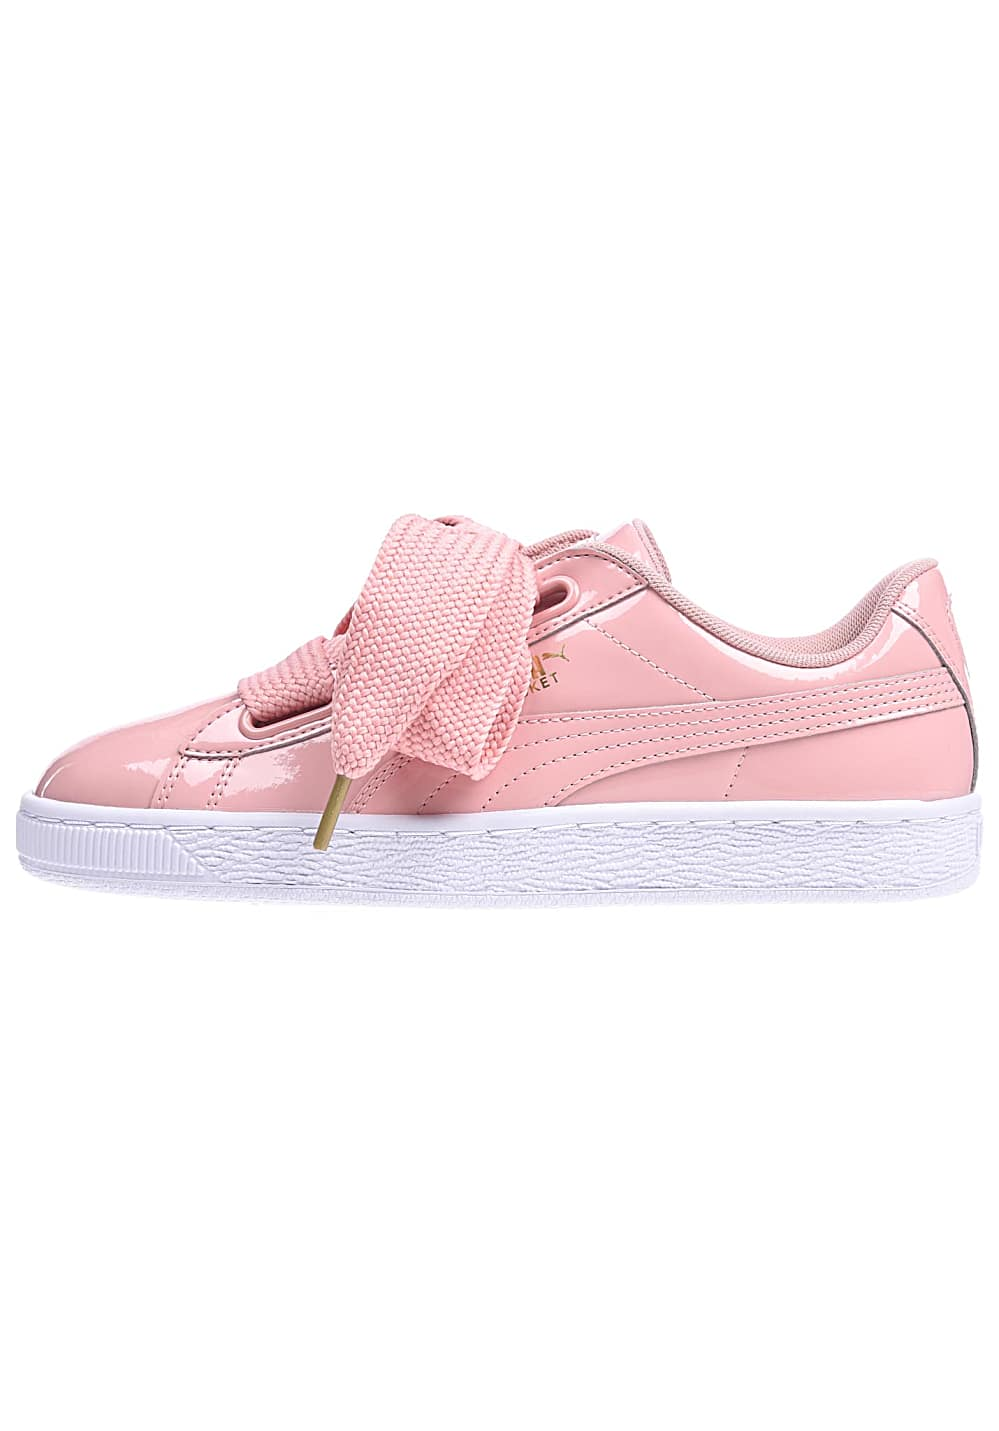 purchase cheap 329d6 d331f Puma Basket Heart Patent - Sneakers for Women - Pink ...